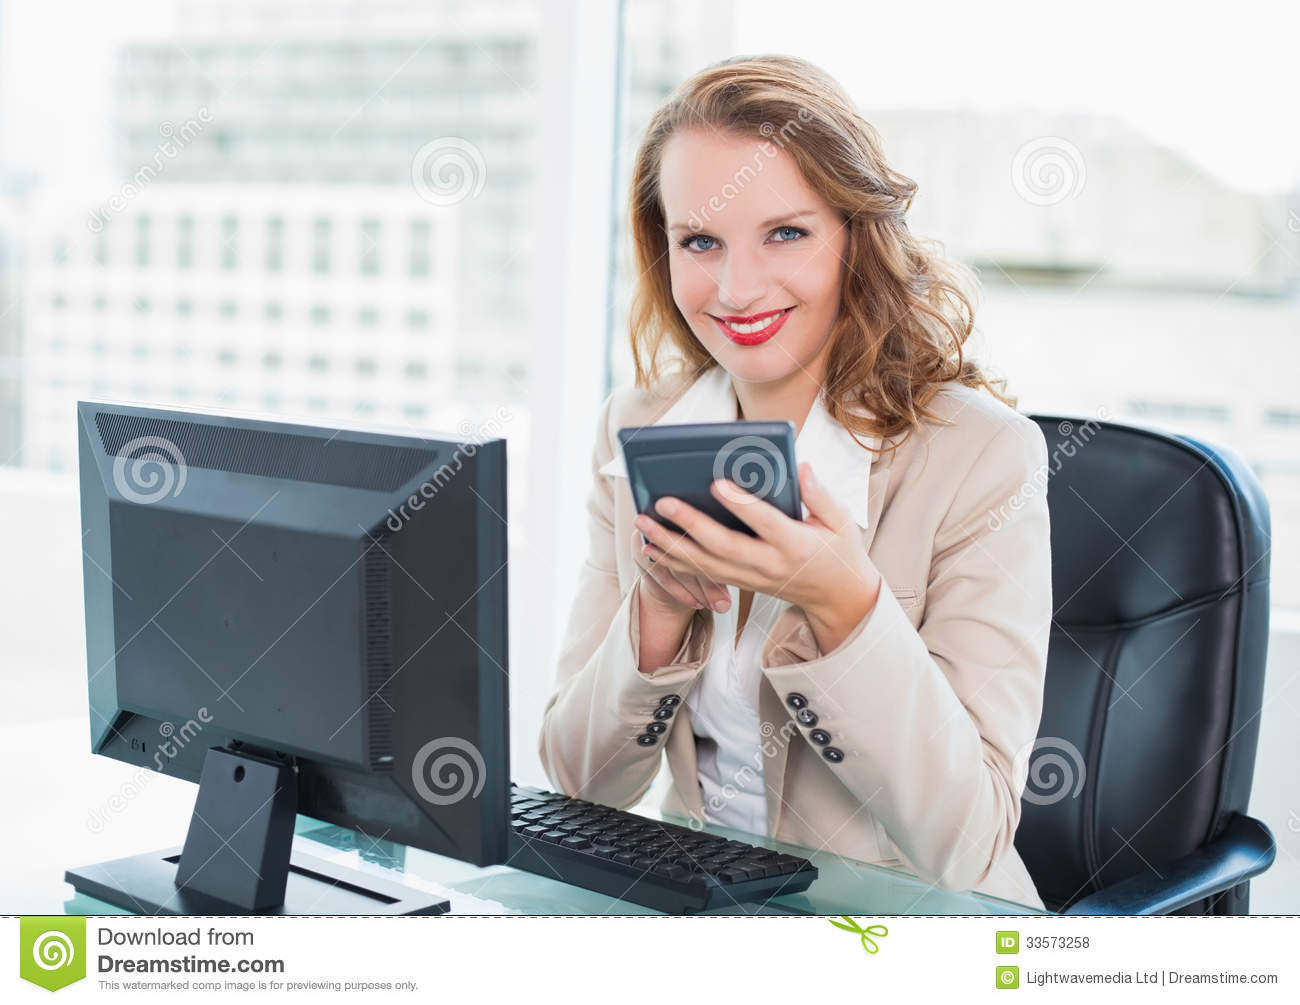 Calm Pretty Businesswoman Using A Calculator Royalty Free